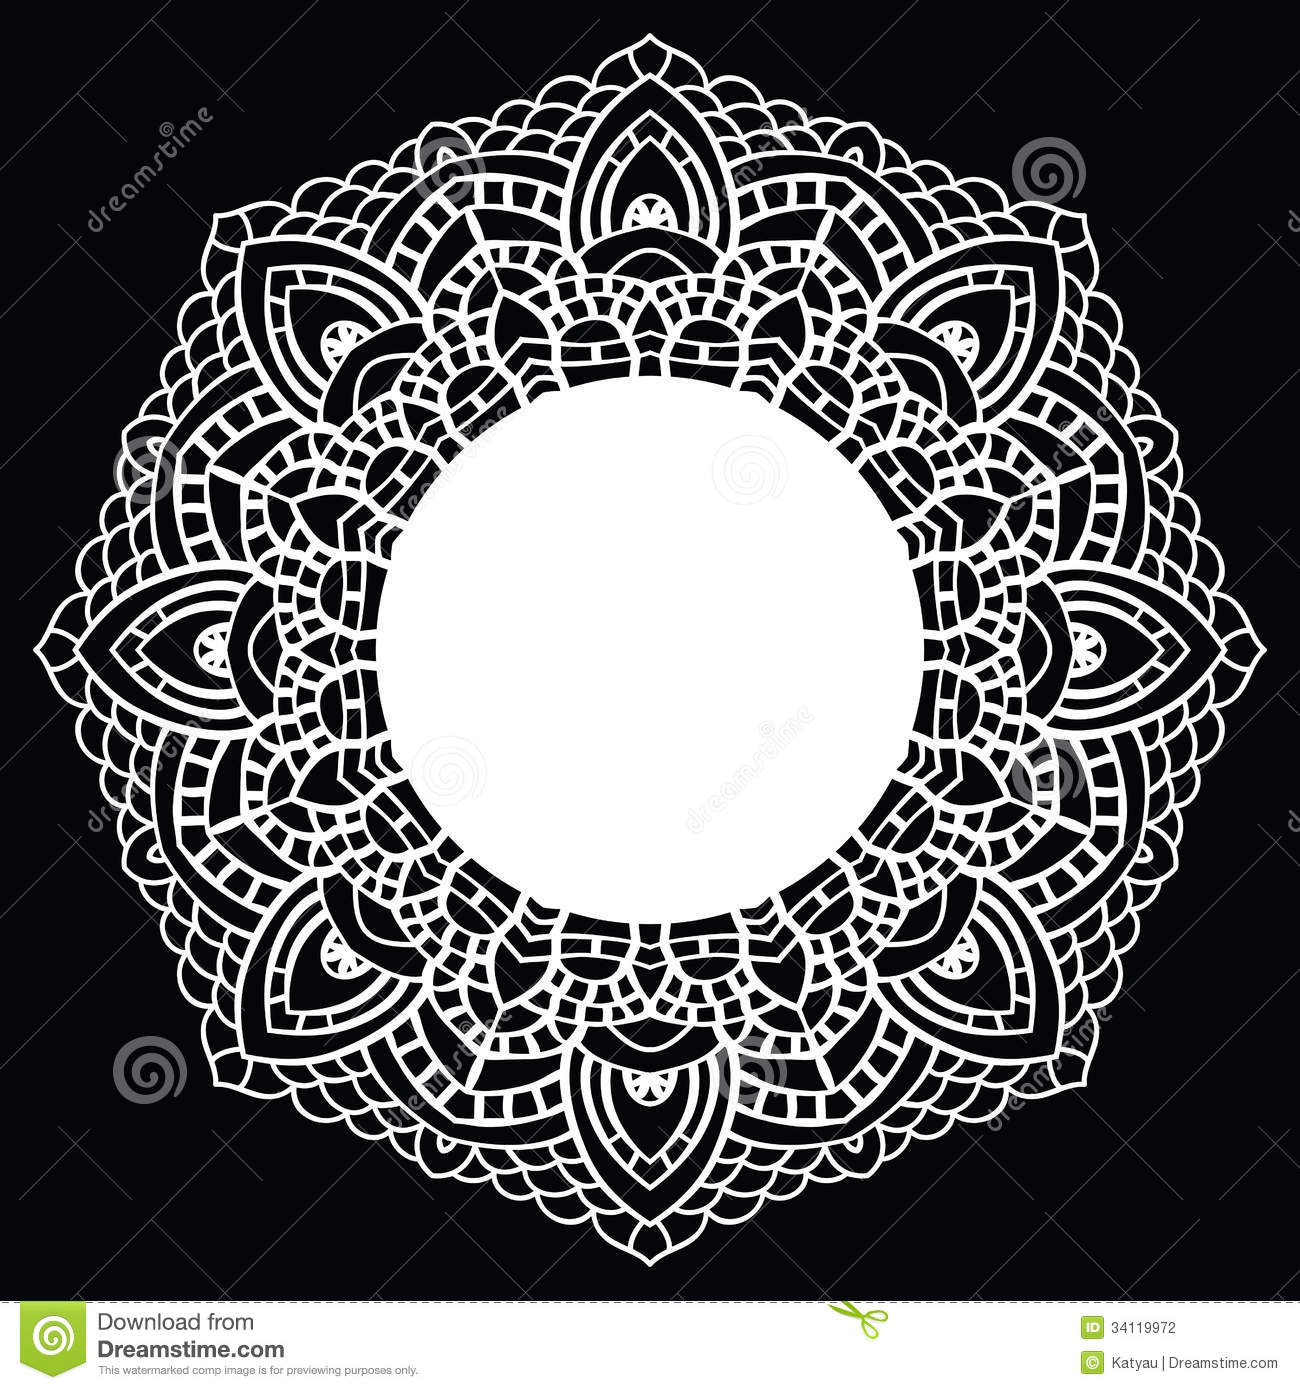 Crochet Patterns Vector : ... handmade knitted doily. Round lace pattern. Vector illustration